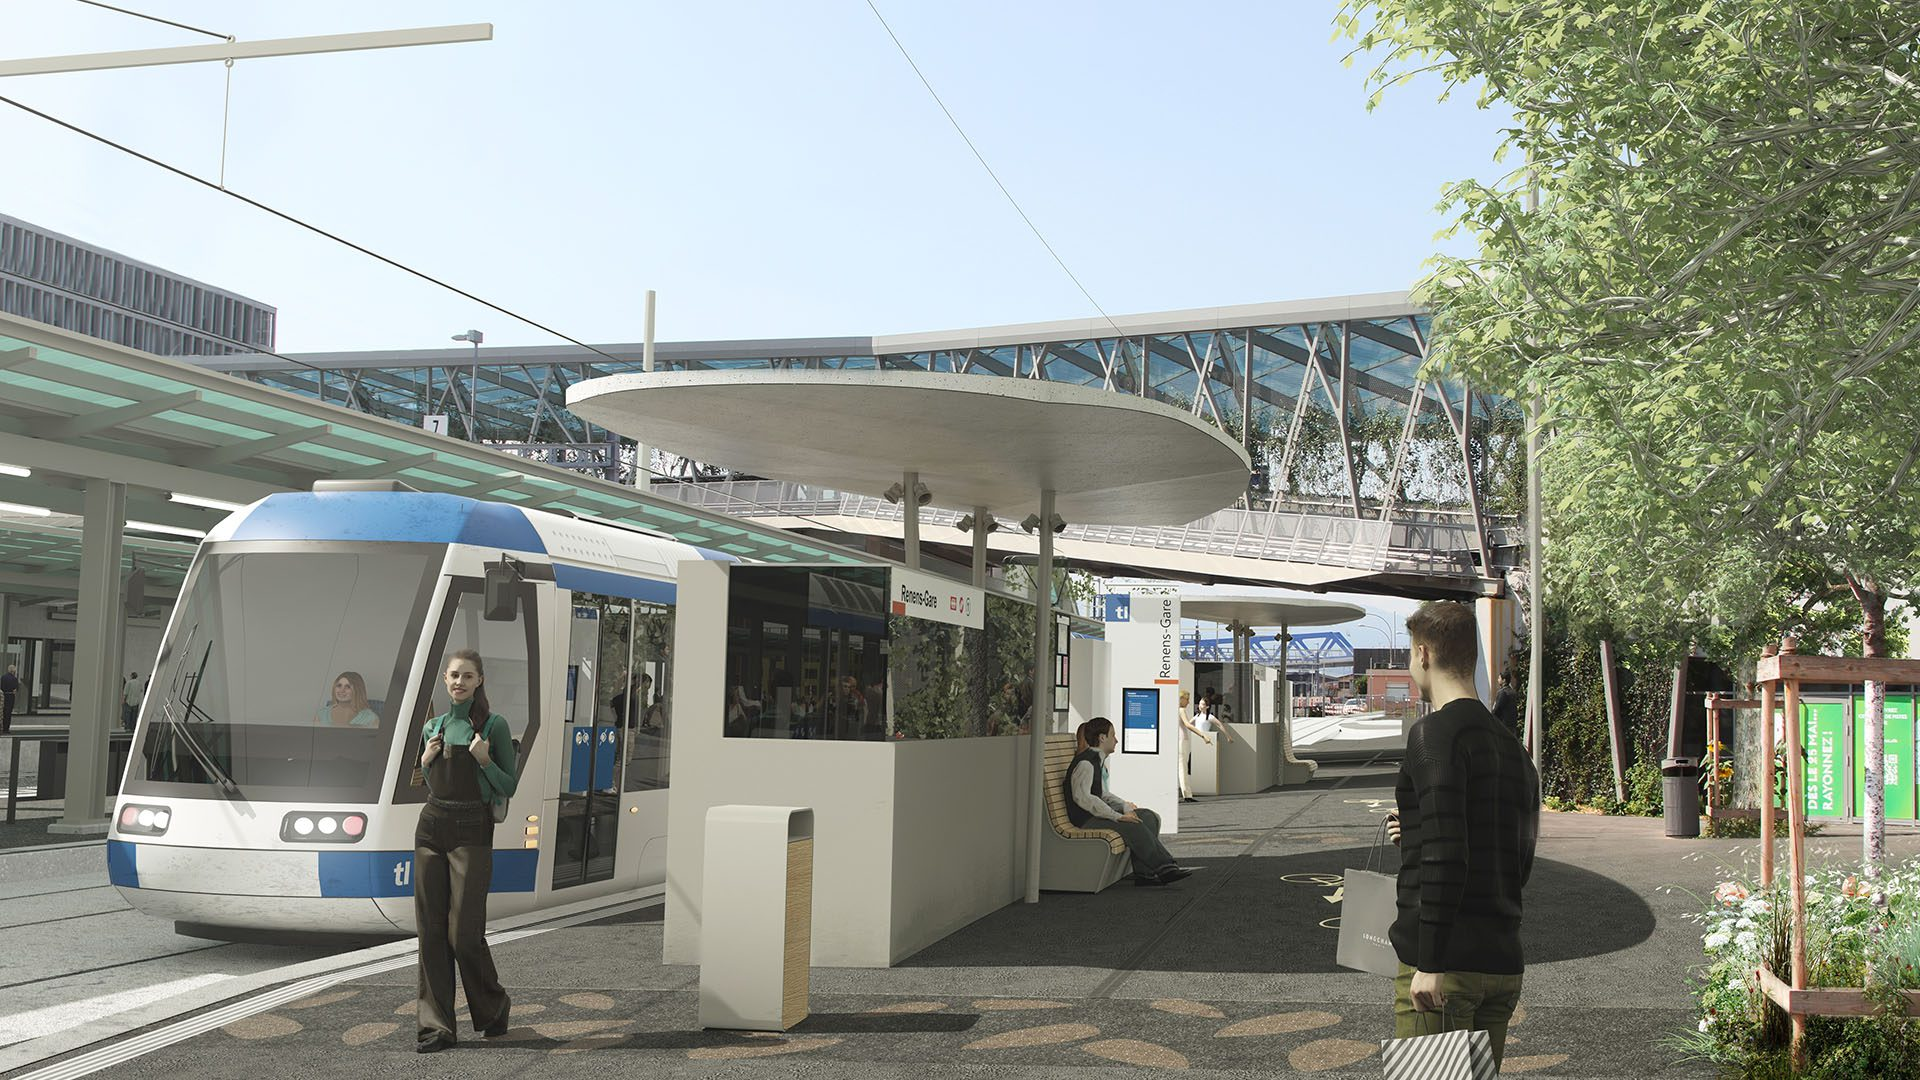 Tramway Lausannois - Renens Gare - Projet